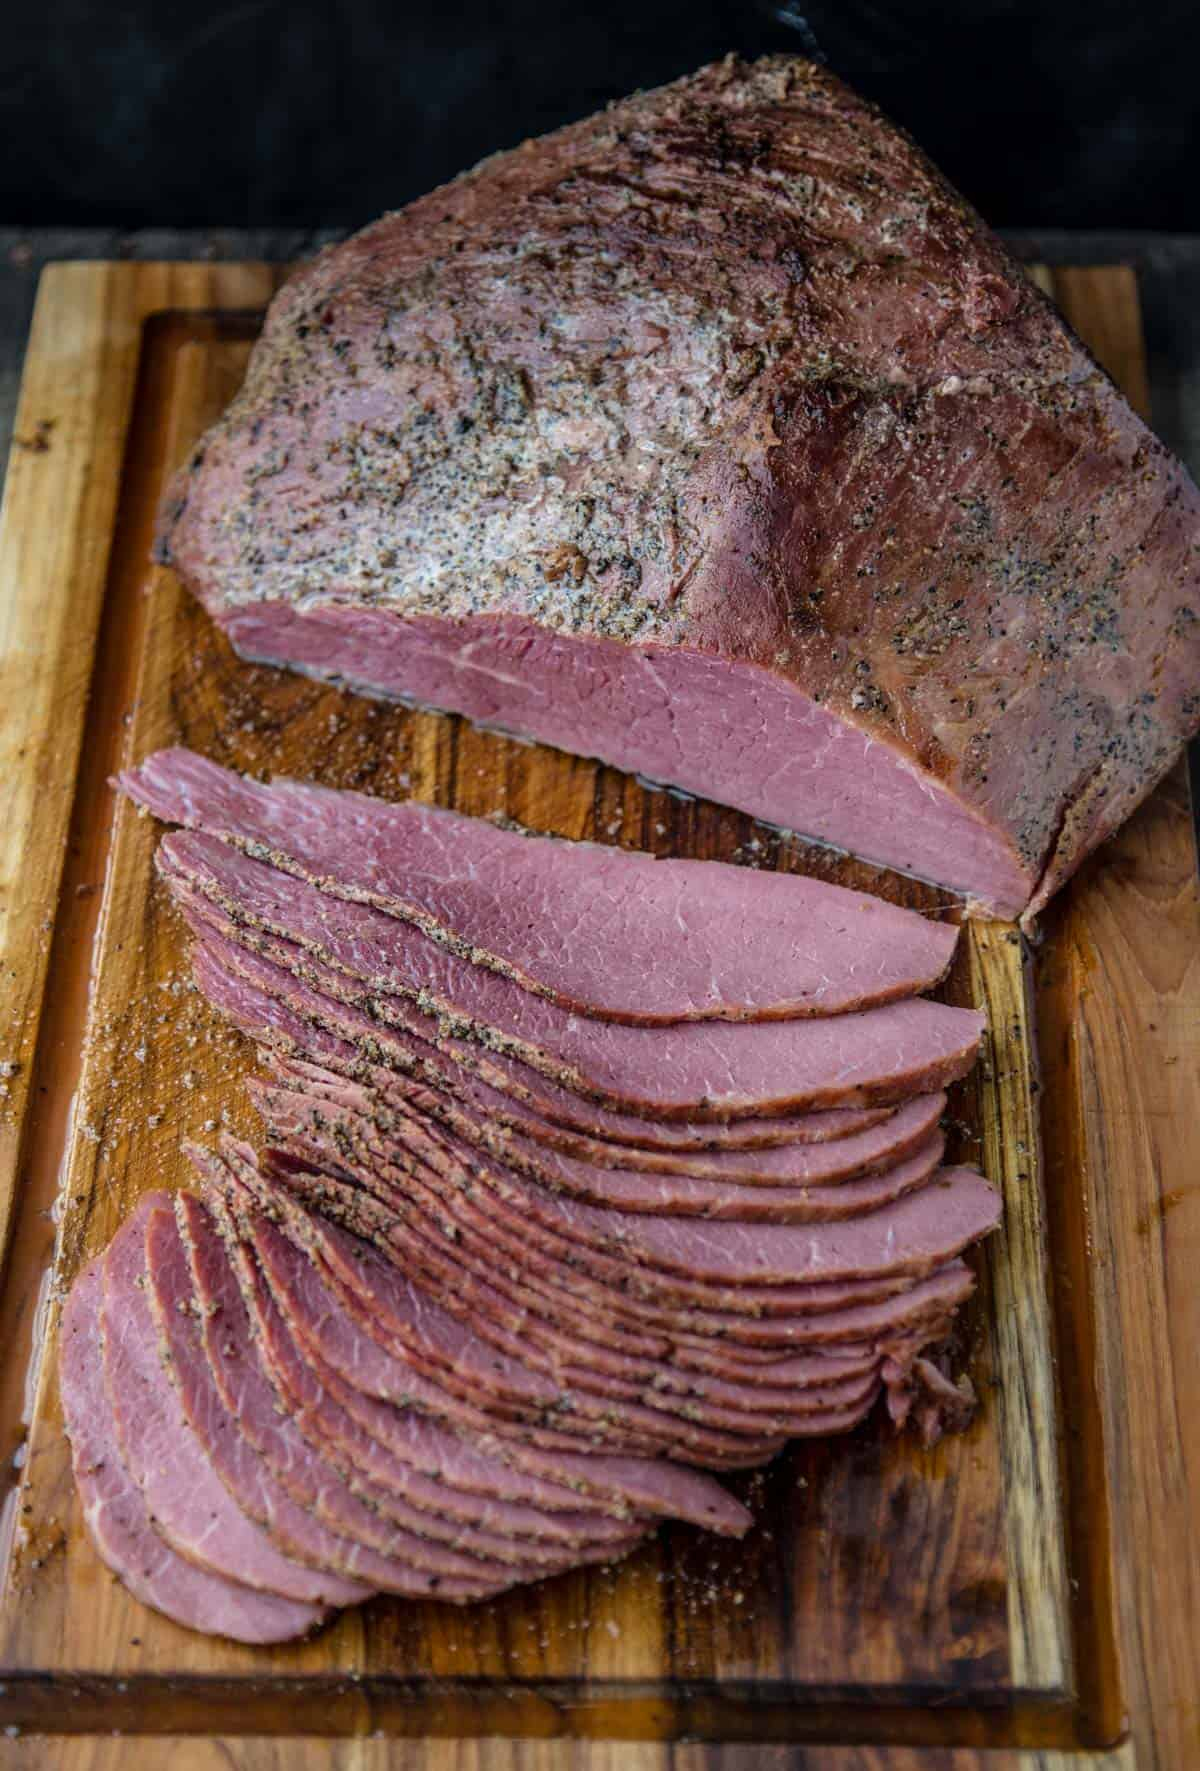 Smoked Corned Beef and how to smoke a corned beef round or brisket